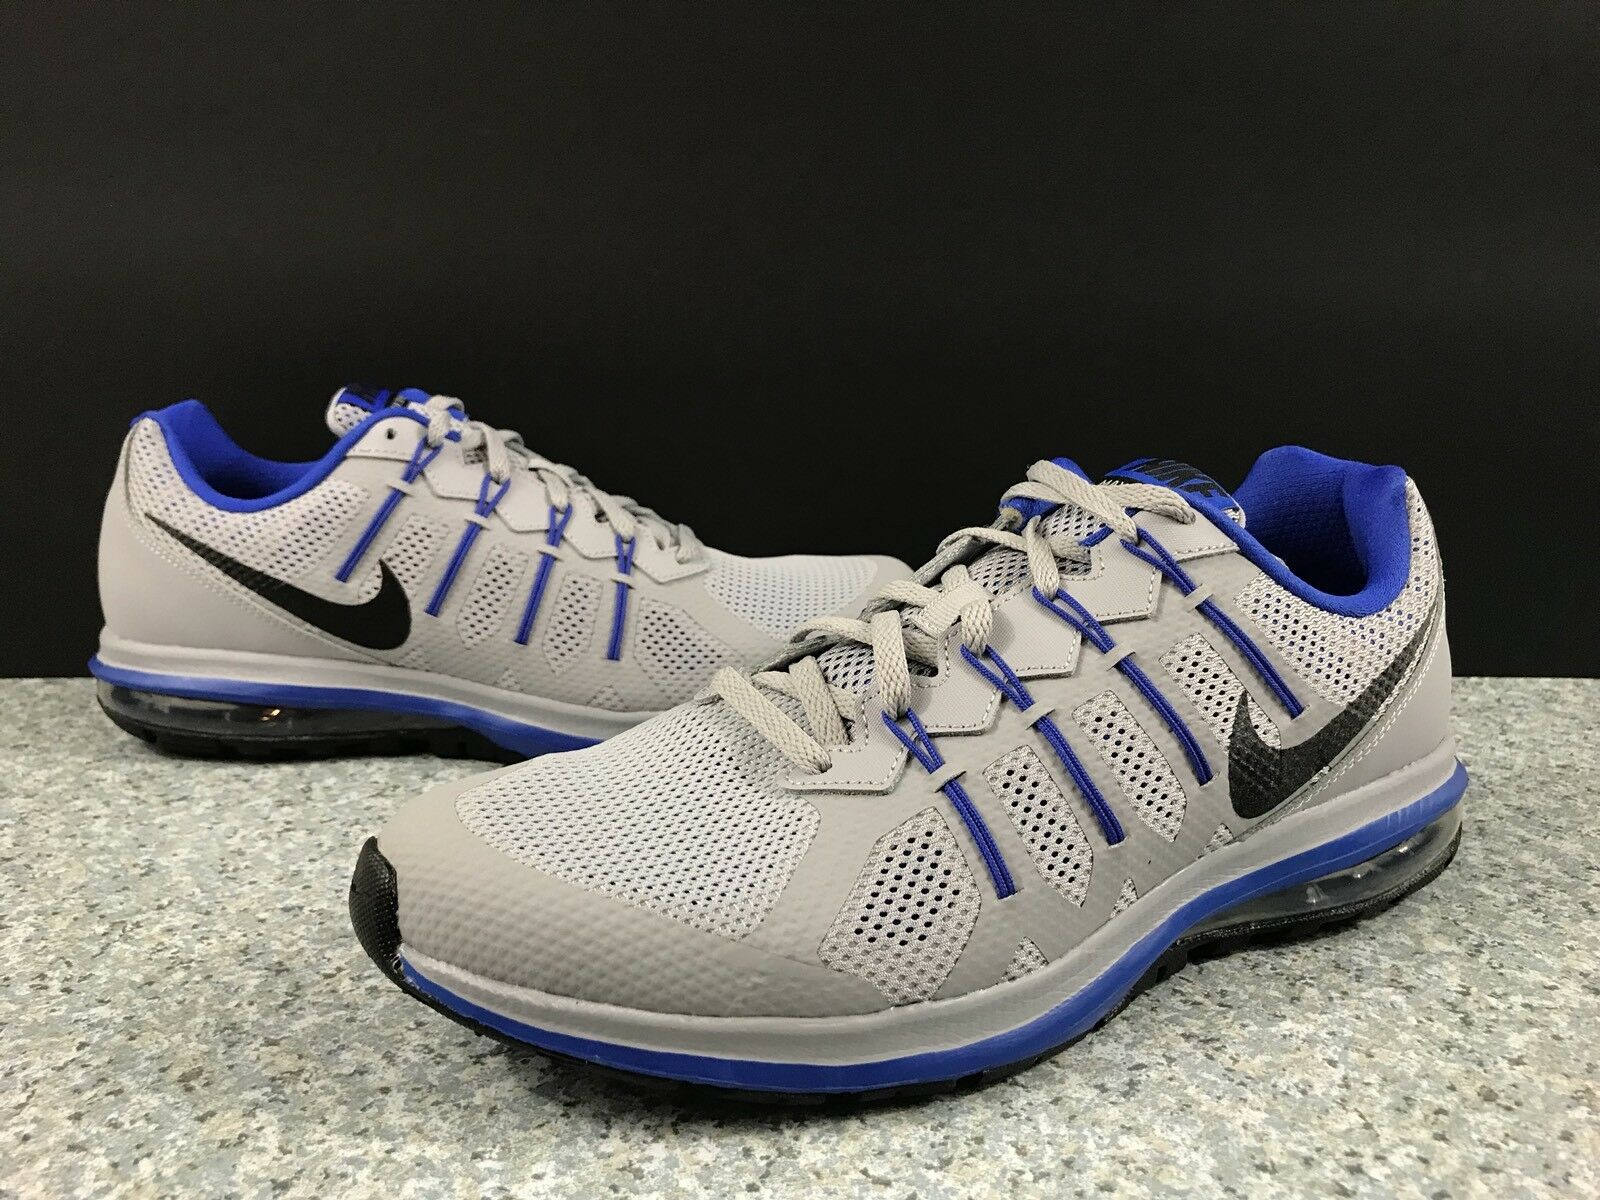 NIKE MEN'S AIR MAX DYNASTY GREY BLUE RUNNING SHOES SIZE 13 816747 008